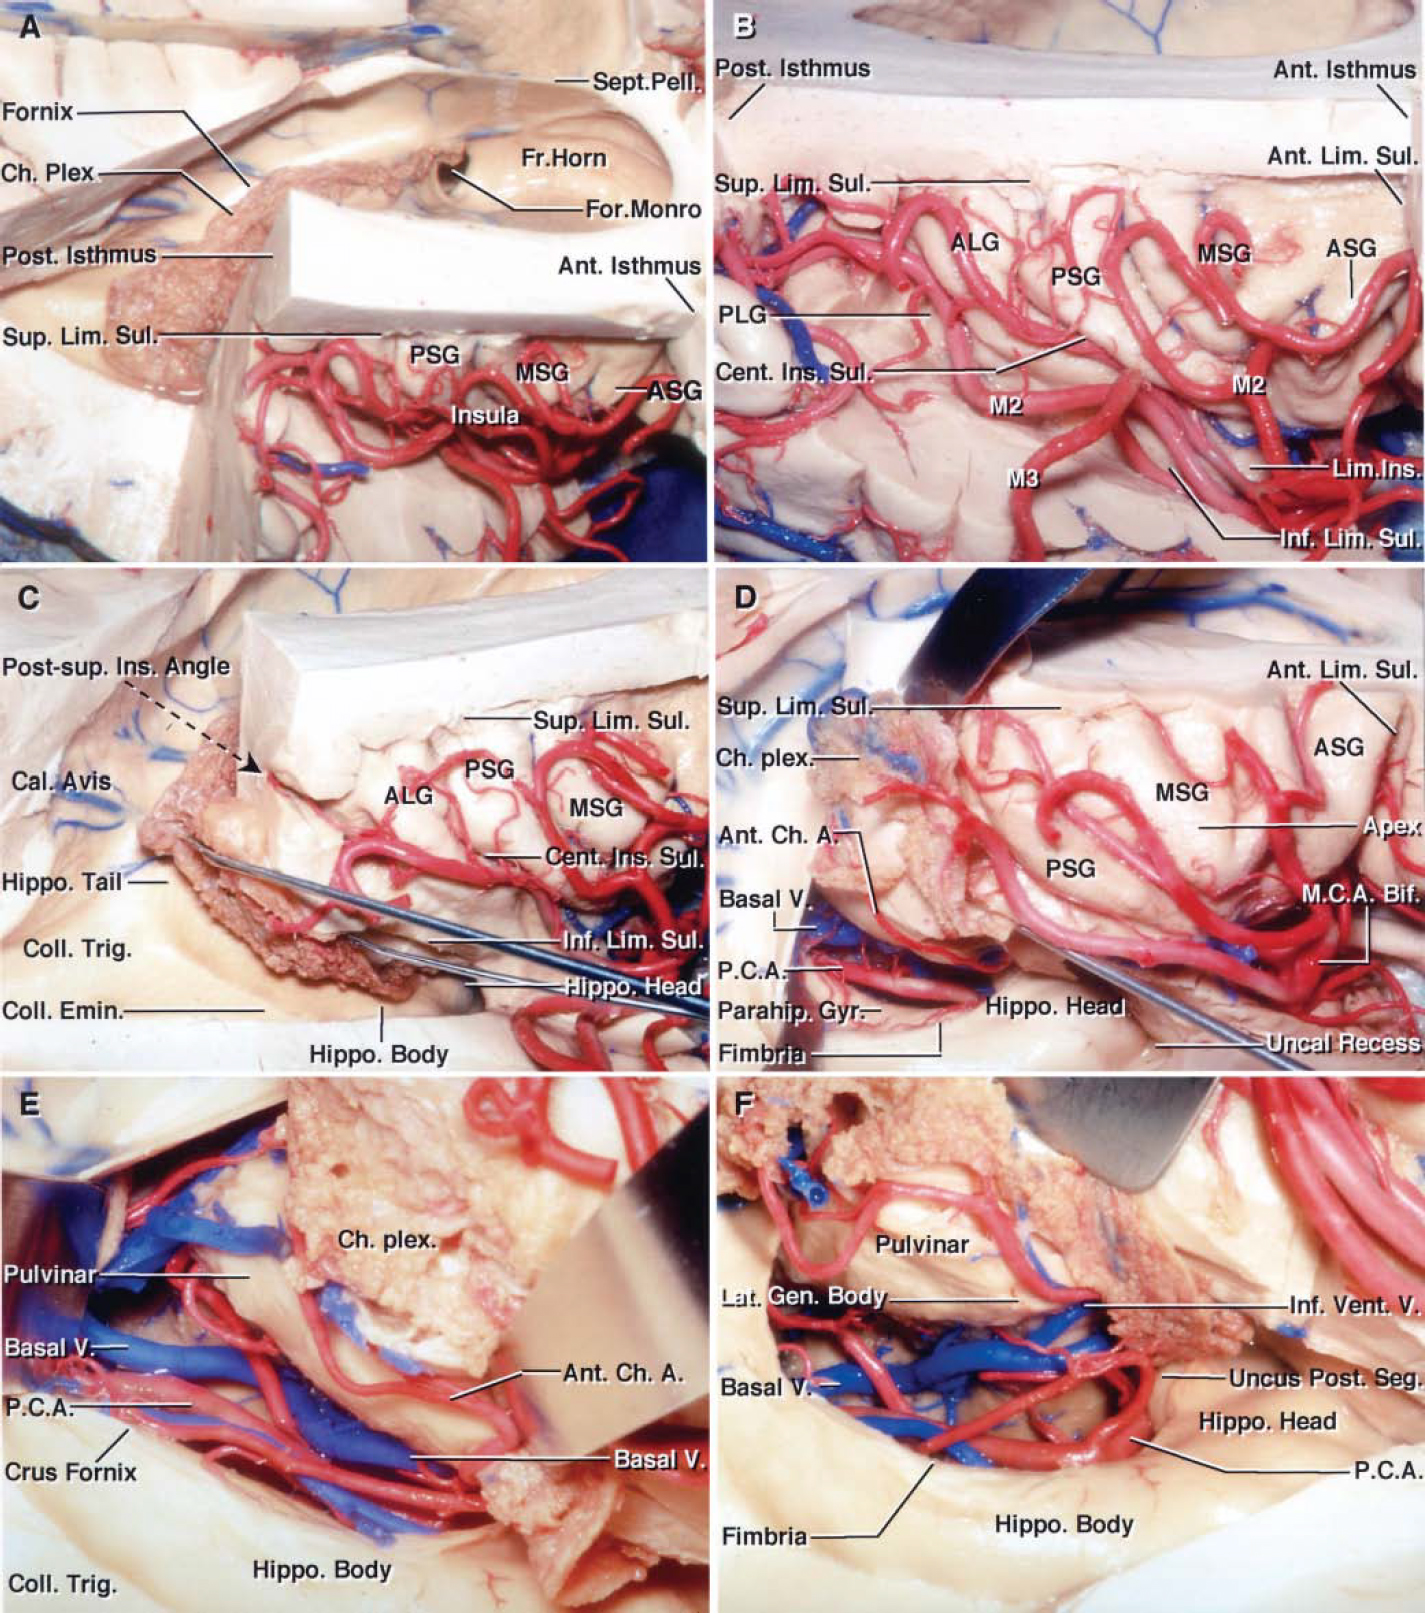 FIG. 13. Photographs obtained during stepwise dissection of left cerebral hemisphere, showing the relationship between the insular cortex and deep landmarks (A–F). A: Superolateral view of the insula and lateral ventricle. The upper portion of the cerebral hemisphere was removed using an axial cut approximately 1 cm above the posterior ramus of the sylvian fissure. The frontoparietal operculum has been removed to expose the insula lateral to the frontal horn and the body of the lateral ventricle. The anterior portion of the superior limiting sulcus is separated from the frontal horn by the anterior isthmus, and the posterior portion of the limiting sulcus is separated from the atrium by the posterior isthmus. The choroid plexus is attached along the choroidal fissure, located between the fornix and thalamus. The foramen of Monro is located deep to the posterior short gyrus. B: Enlarged lateral view. The M2branches course along the insula. Most of the branching occurs near the insular pole. The central insular sulcus is the site most replete with insular perforating arteries. C: Posterolateral view of the same hemisphere. The lateral wall of the atrium and the roof of the temporal horn have been removed by dividing the white matter along the inferior limiting sulcus. The posterosuperior insular angle at the junction of the superior and inferior limiting sulci is superficial to the junction of the tail of the hippocampus, calcar avis, and anterior wall of the atrium. The choroid plexus has been elevated to expose the floor of the temporal horn, which is formed by the collateral eminence overlying the collateral sulcus laterally and the hippocampus medially. D: The incision along the inferior limiting sulcus has been extended forward to where the incision begins for the transinsular approach into the temporal horn for a selective amygdalohippocampectomy. The choroidal fissure in the temporal horn has been opened by separating the fimbria of the fornix and choroid plexu